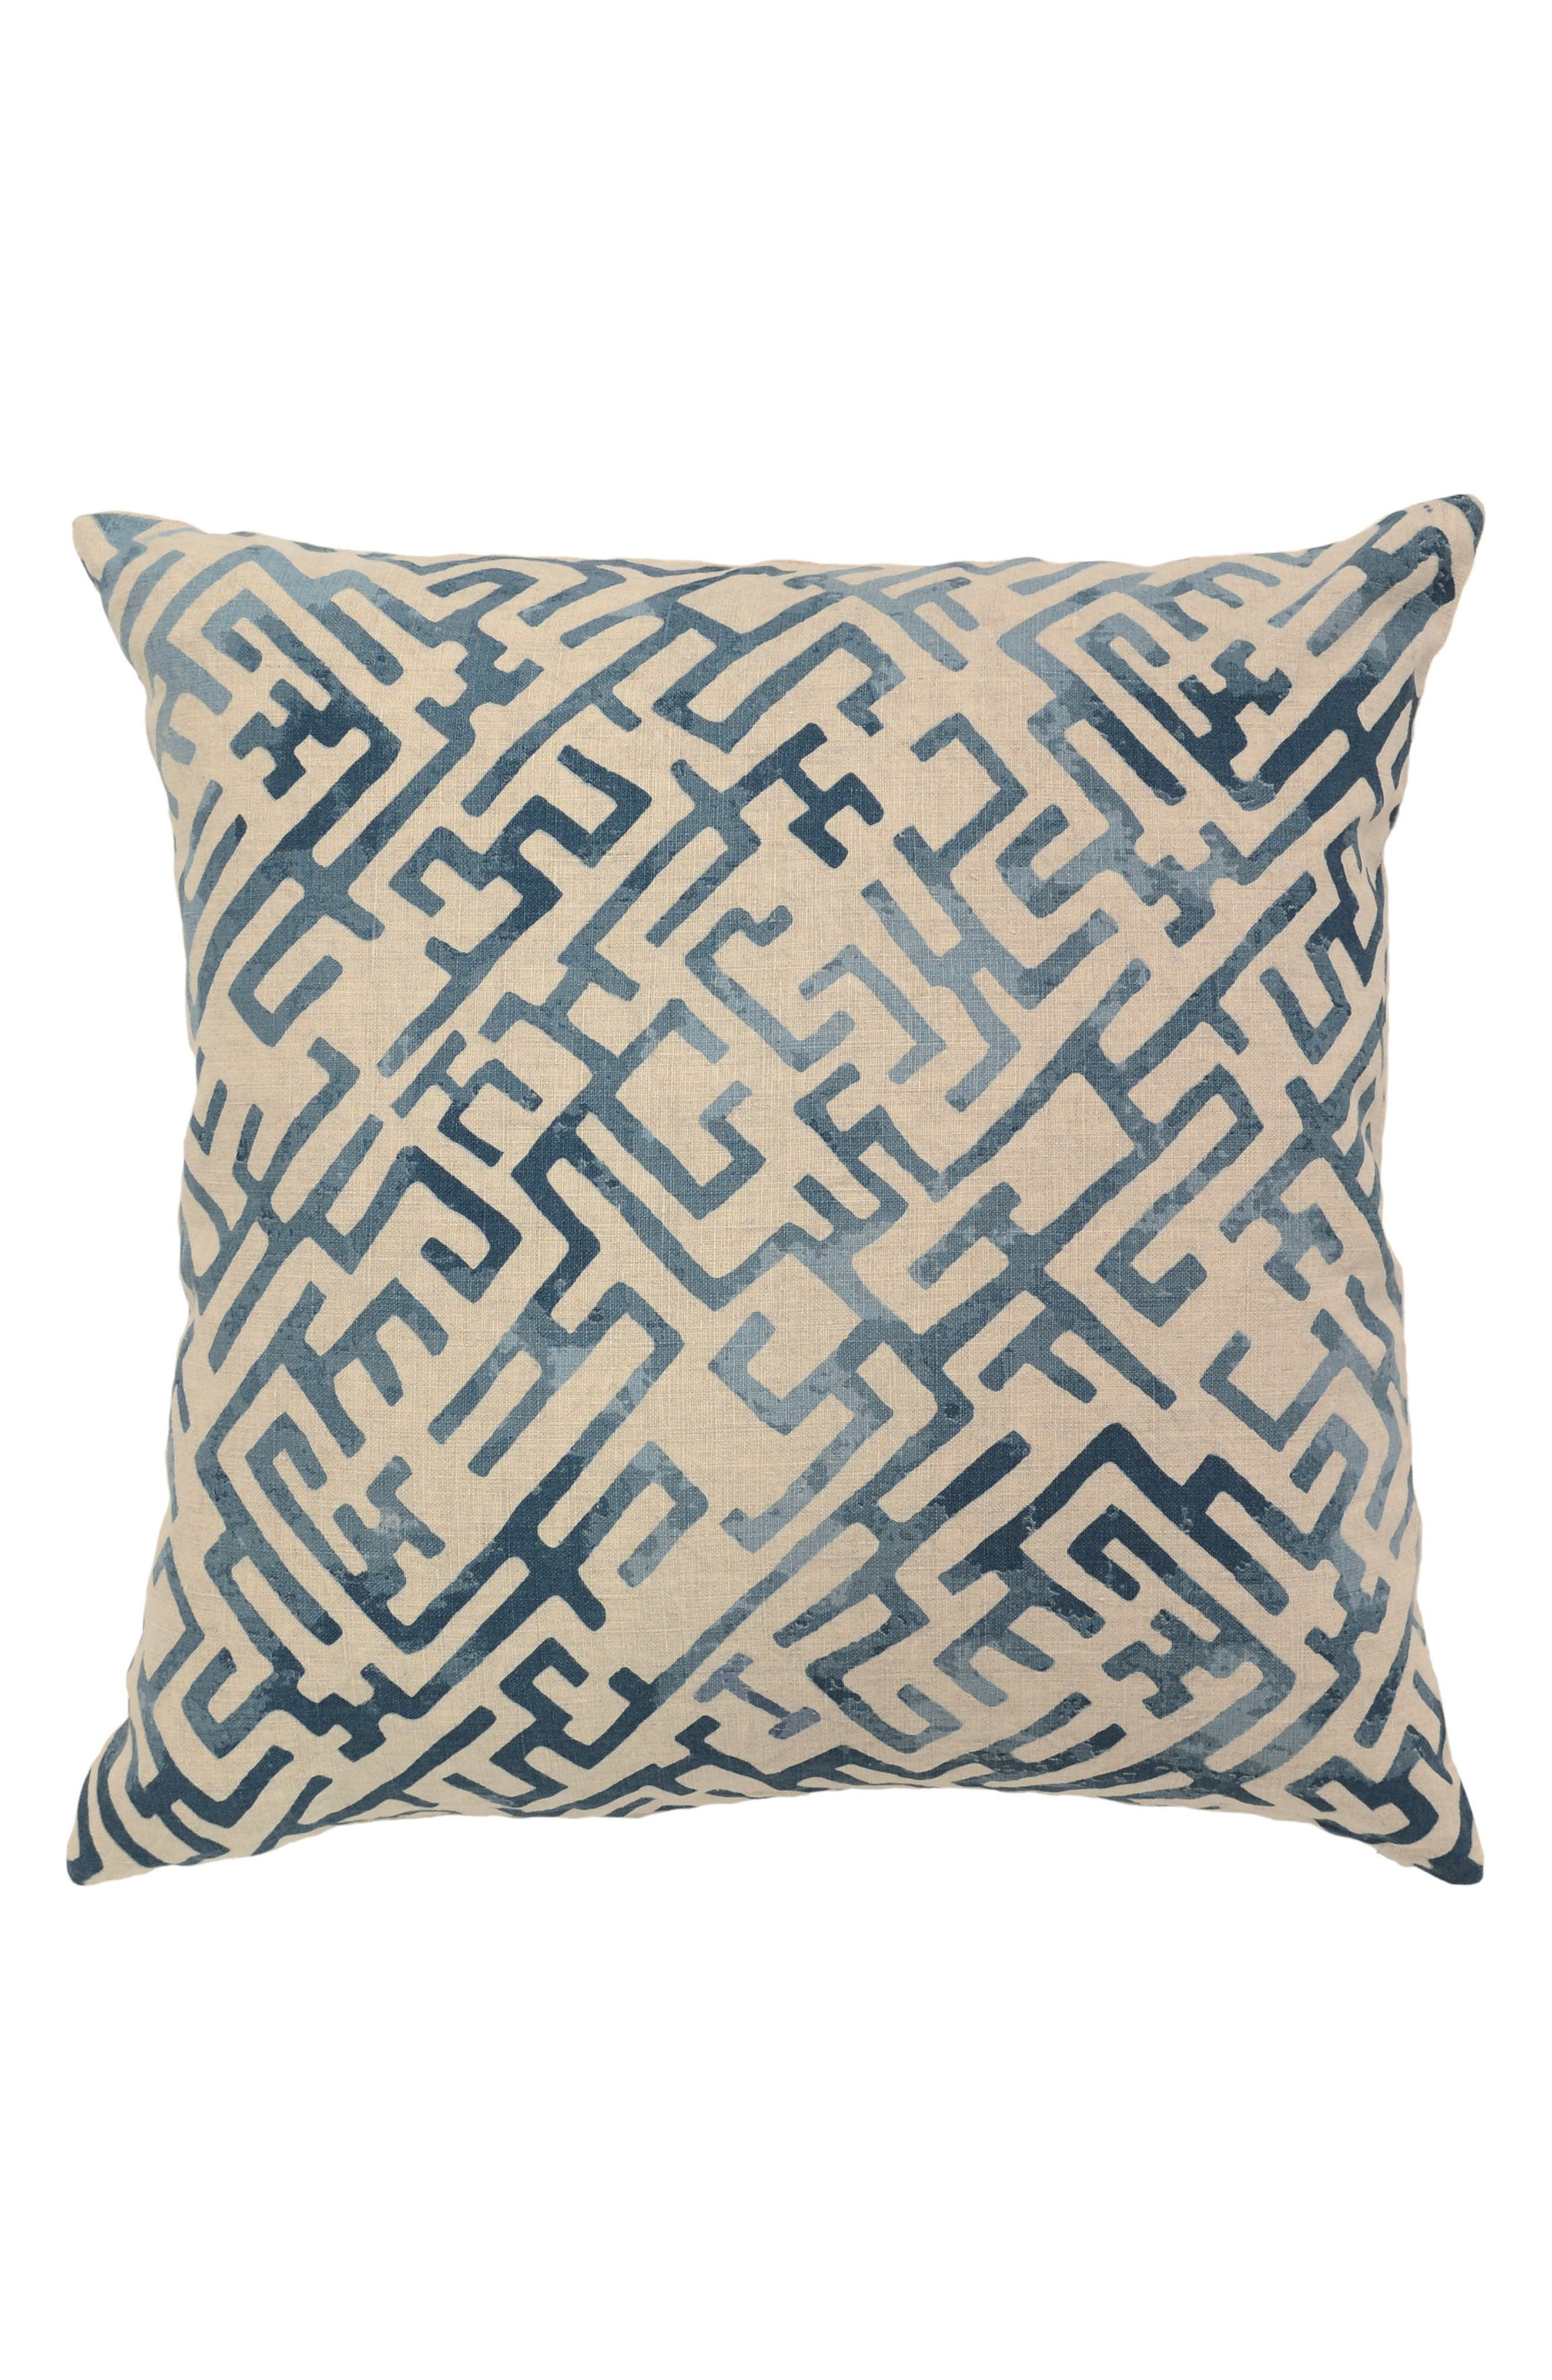 Marin Pillow,                         Main,                         color, BLUE